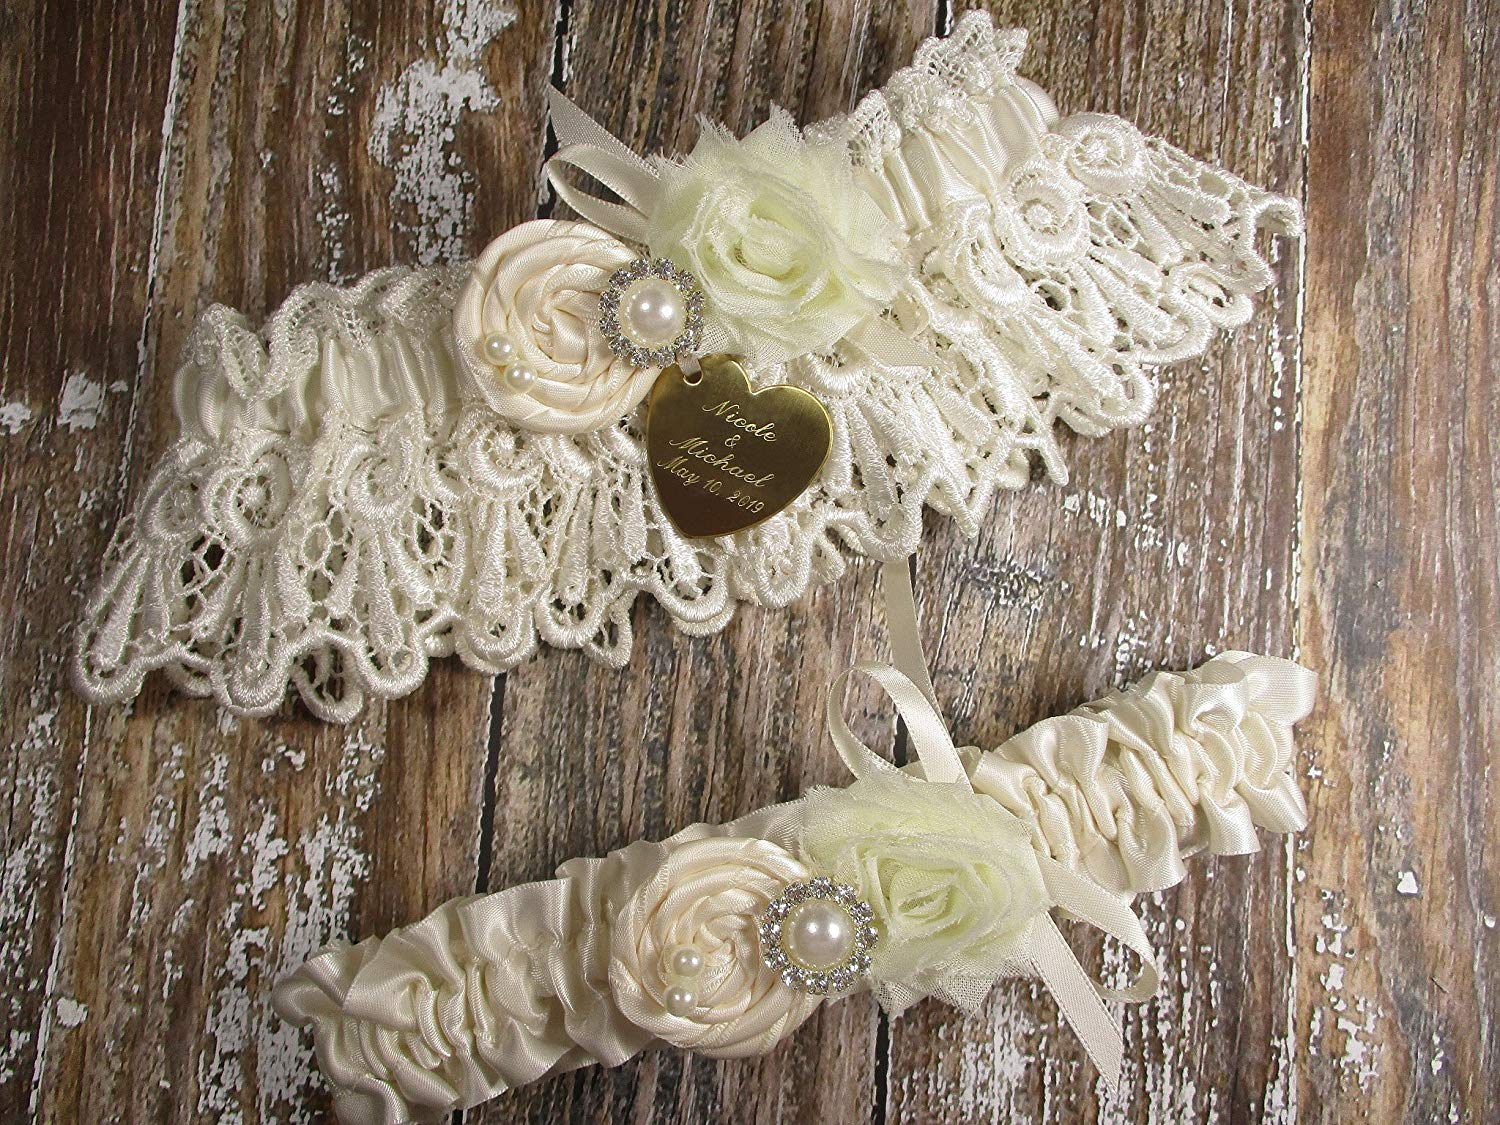 Ivory Wedding Garter Set in Lace with a Handmade Rose and Personalized Engraving